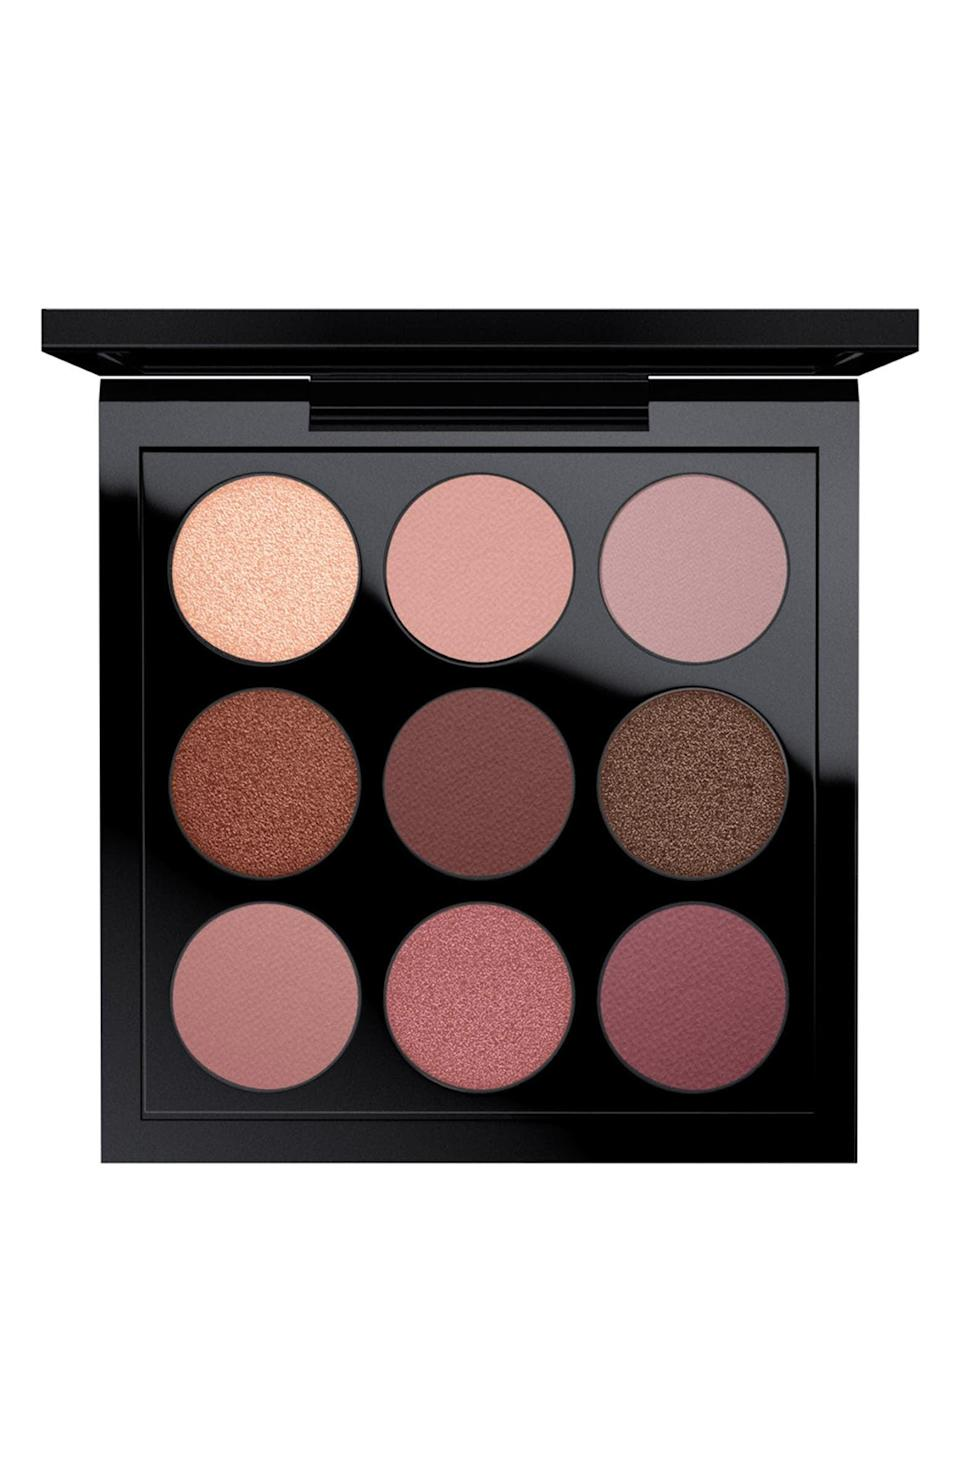 <p>Embrace those fall vibes with a whole palette dedicated to burgundy. This <span>MAC Times Nine Eyeshadow Palette</span> ($32) will take your looks to a whole new level with pigmented mattes and shimmers. It also comes in three other colorways, if burgundy isn't your thing.</p>